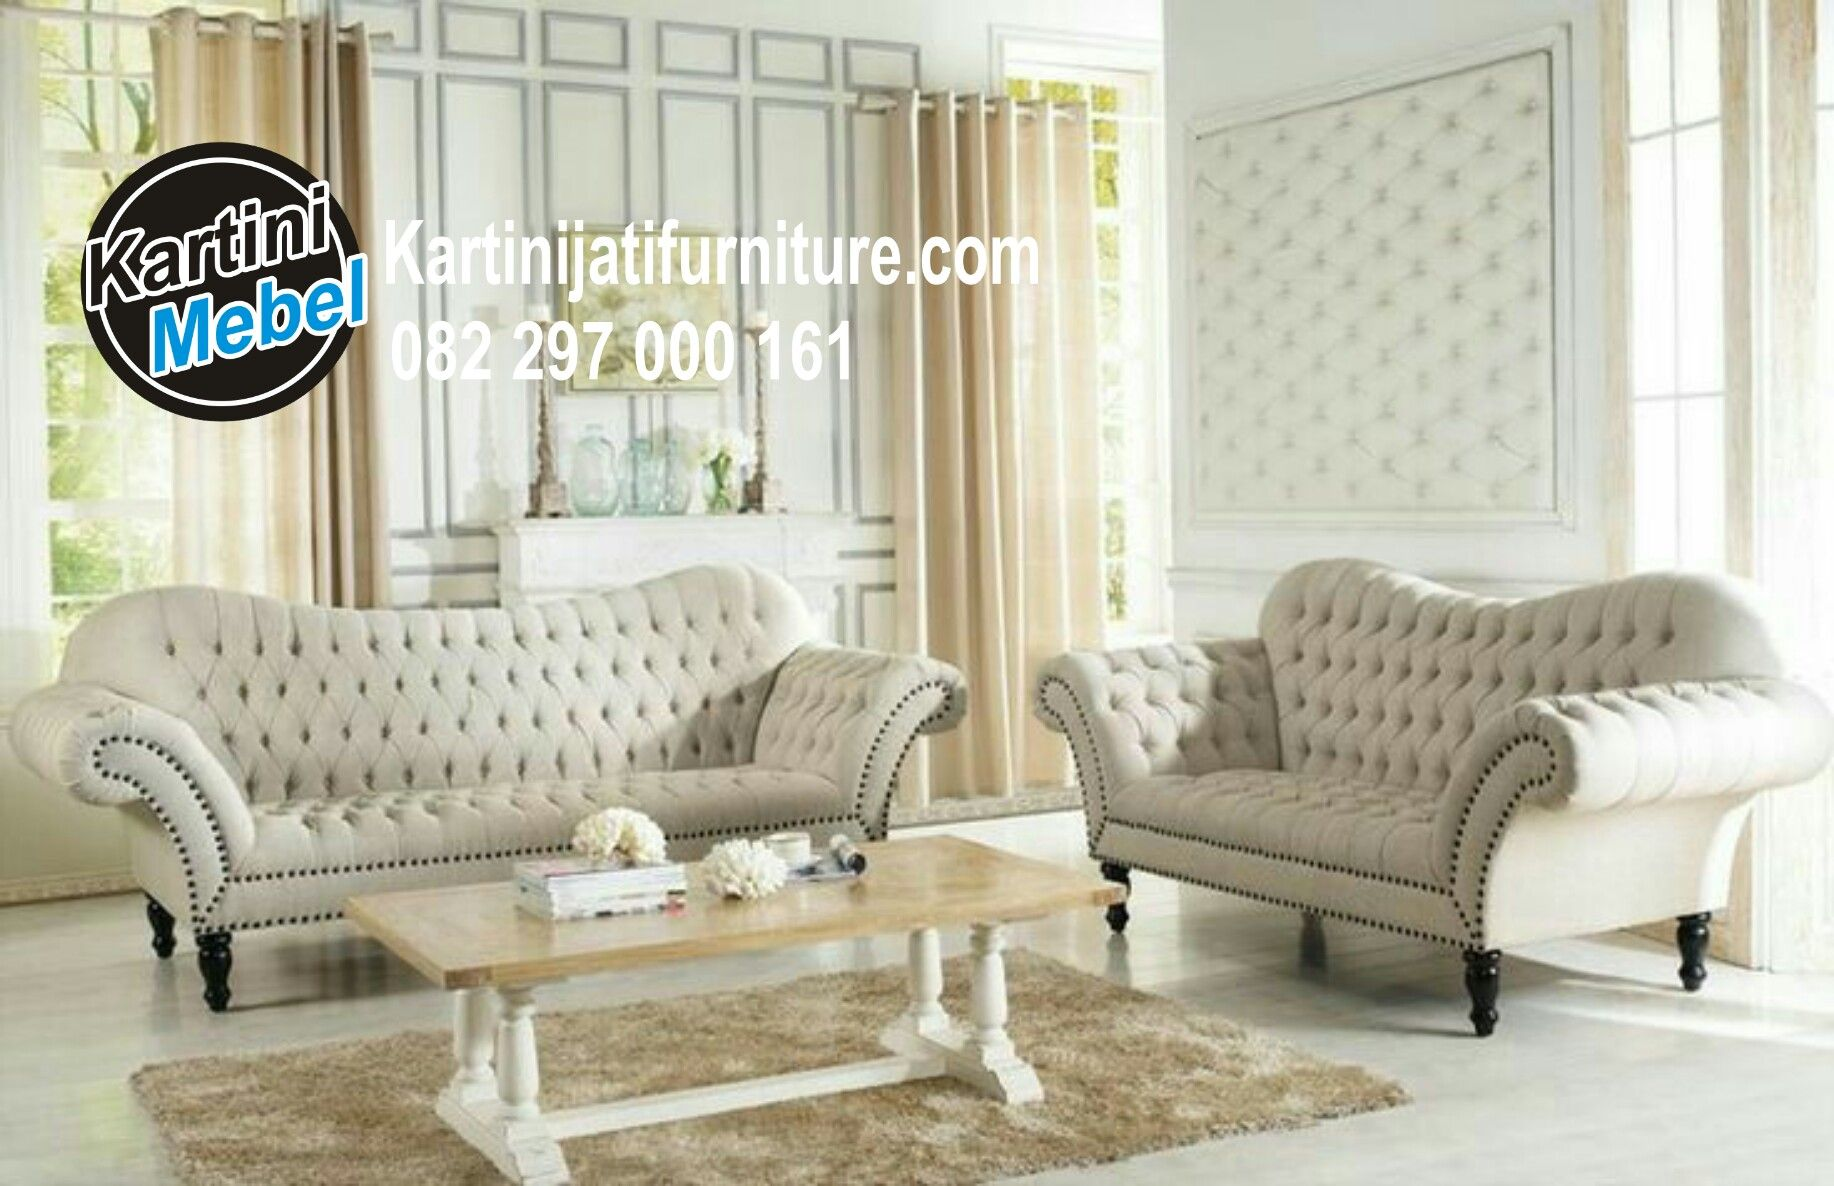 Wholesale Outdoor Synthetic rattan Furniture product with high